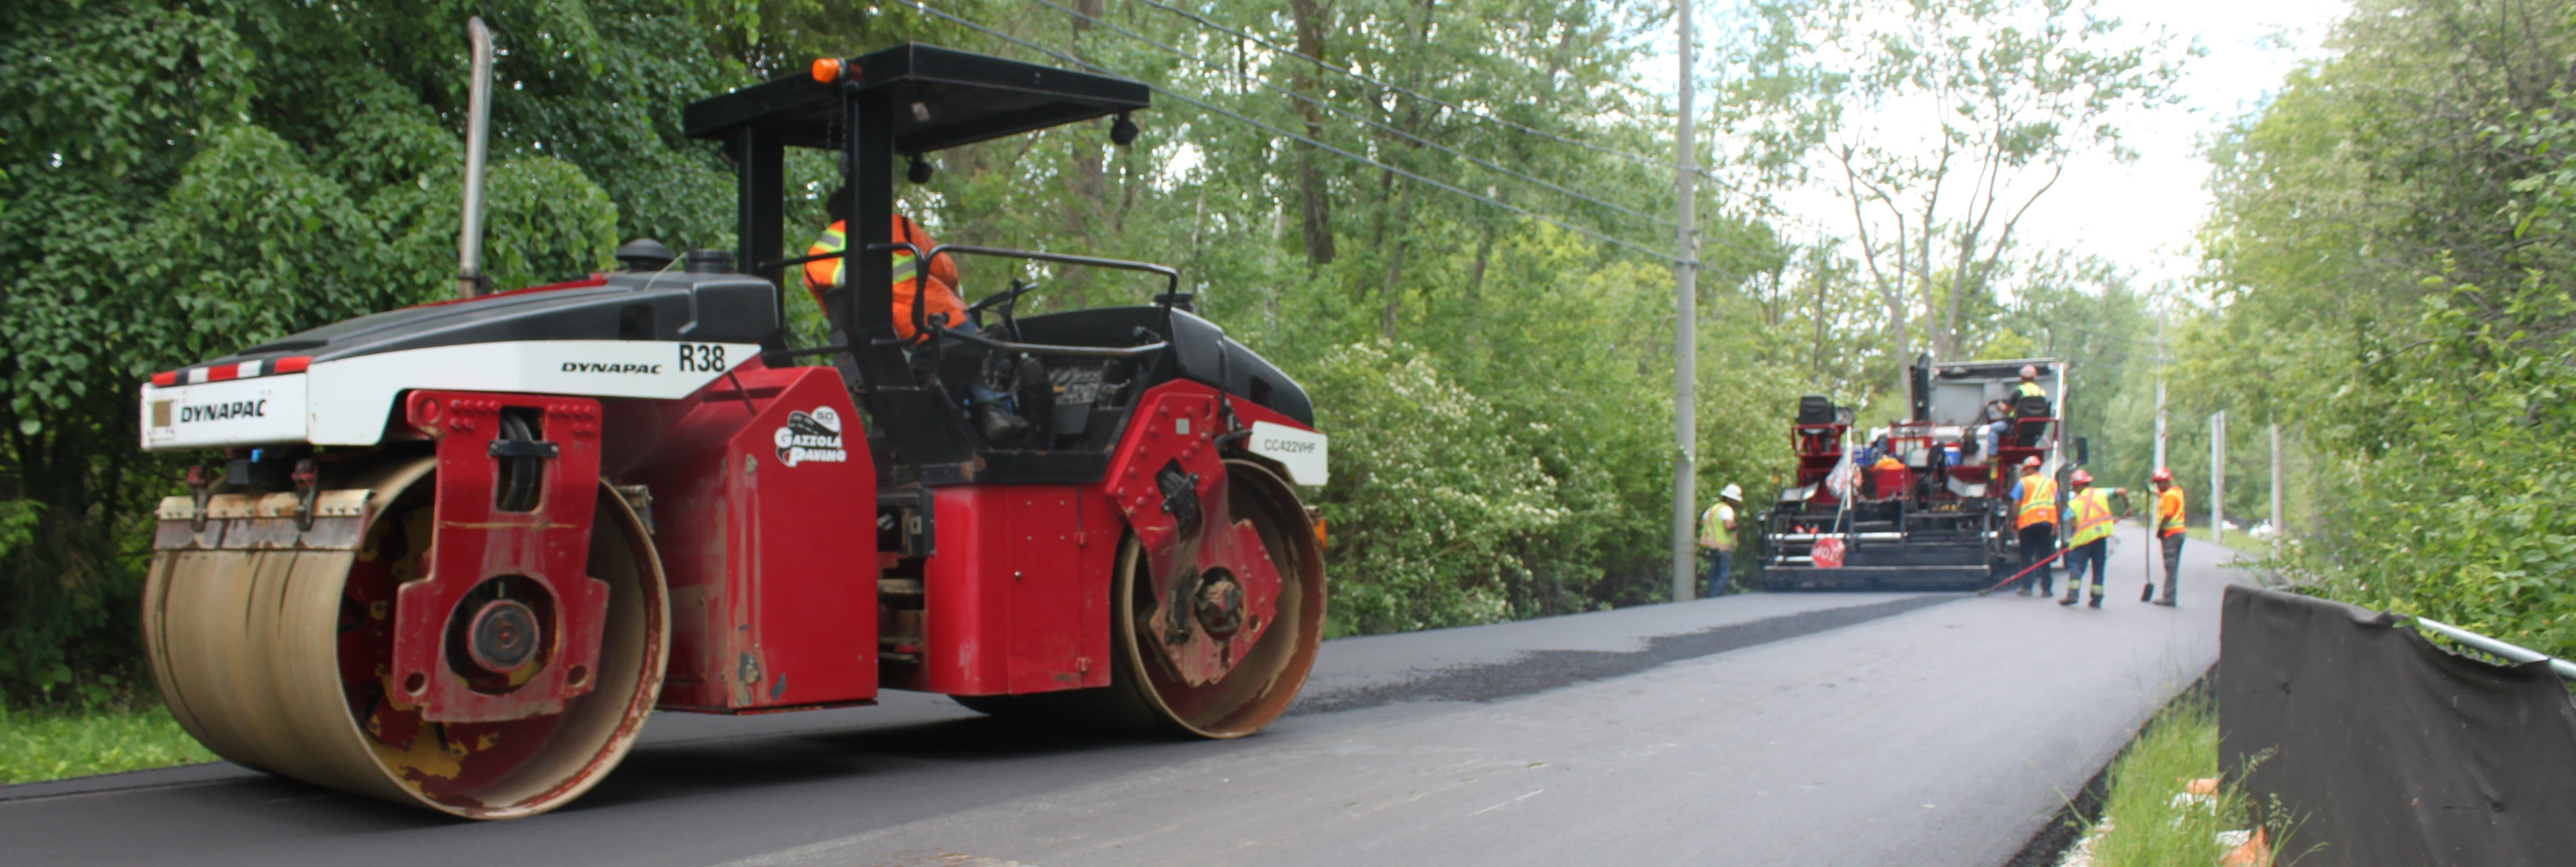 Gazzola Paving | Paving, Roadbuilding, Construction, Asphalt & Snow Removal Services in the GTA